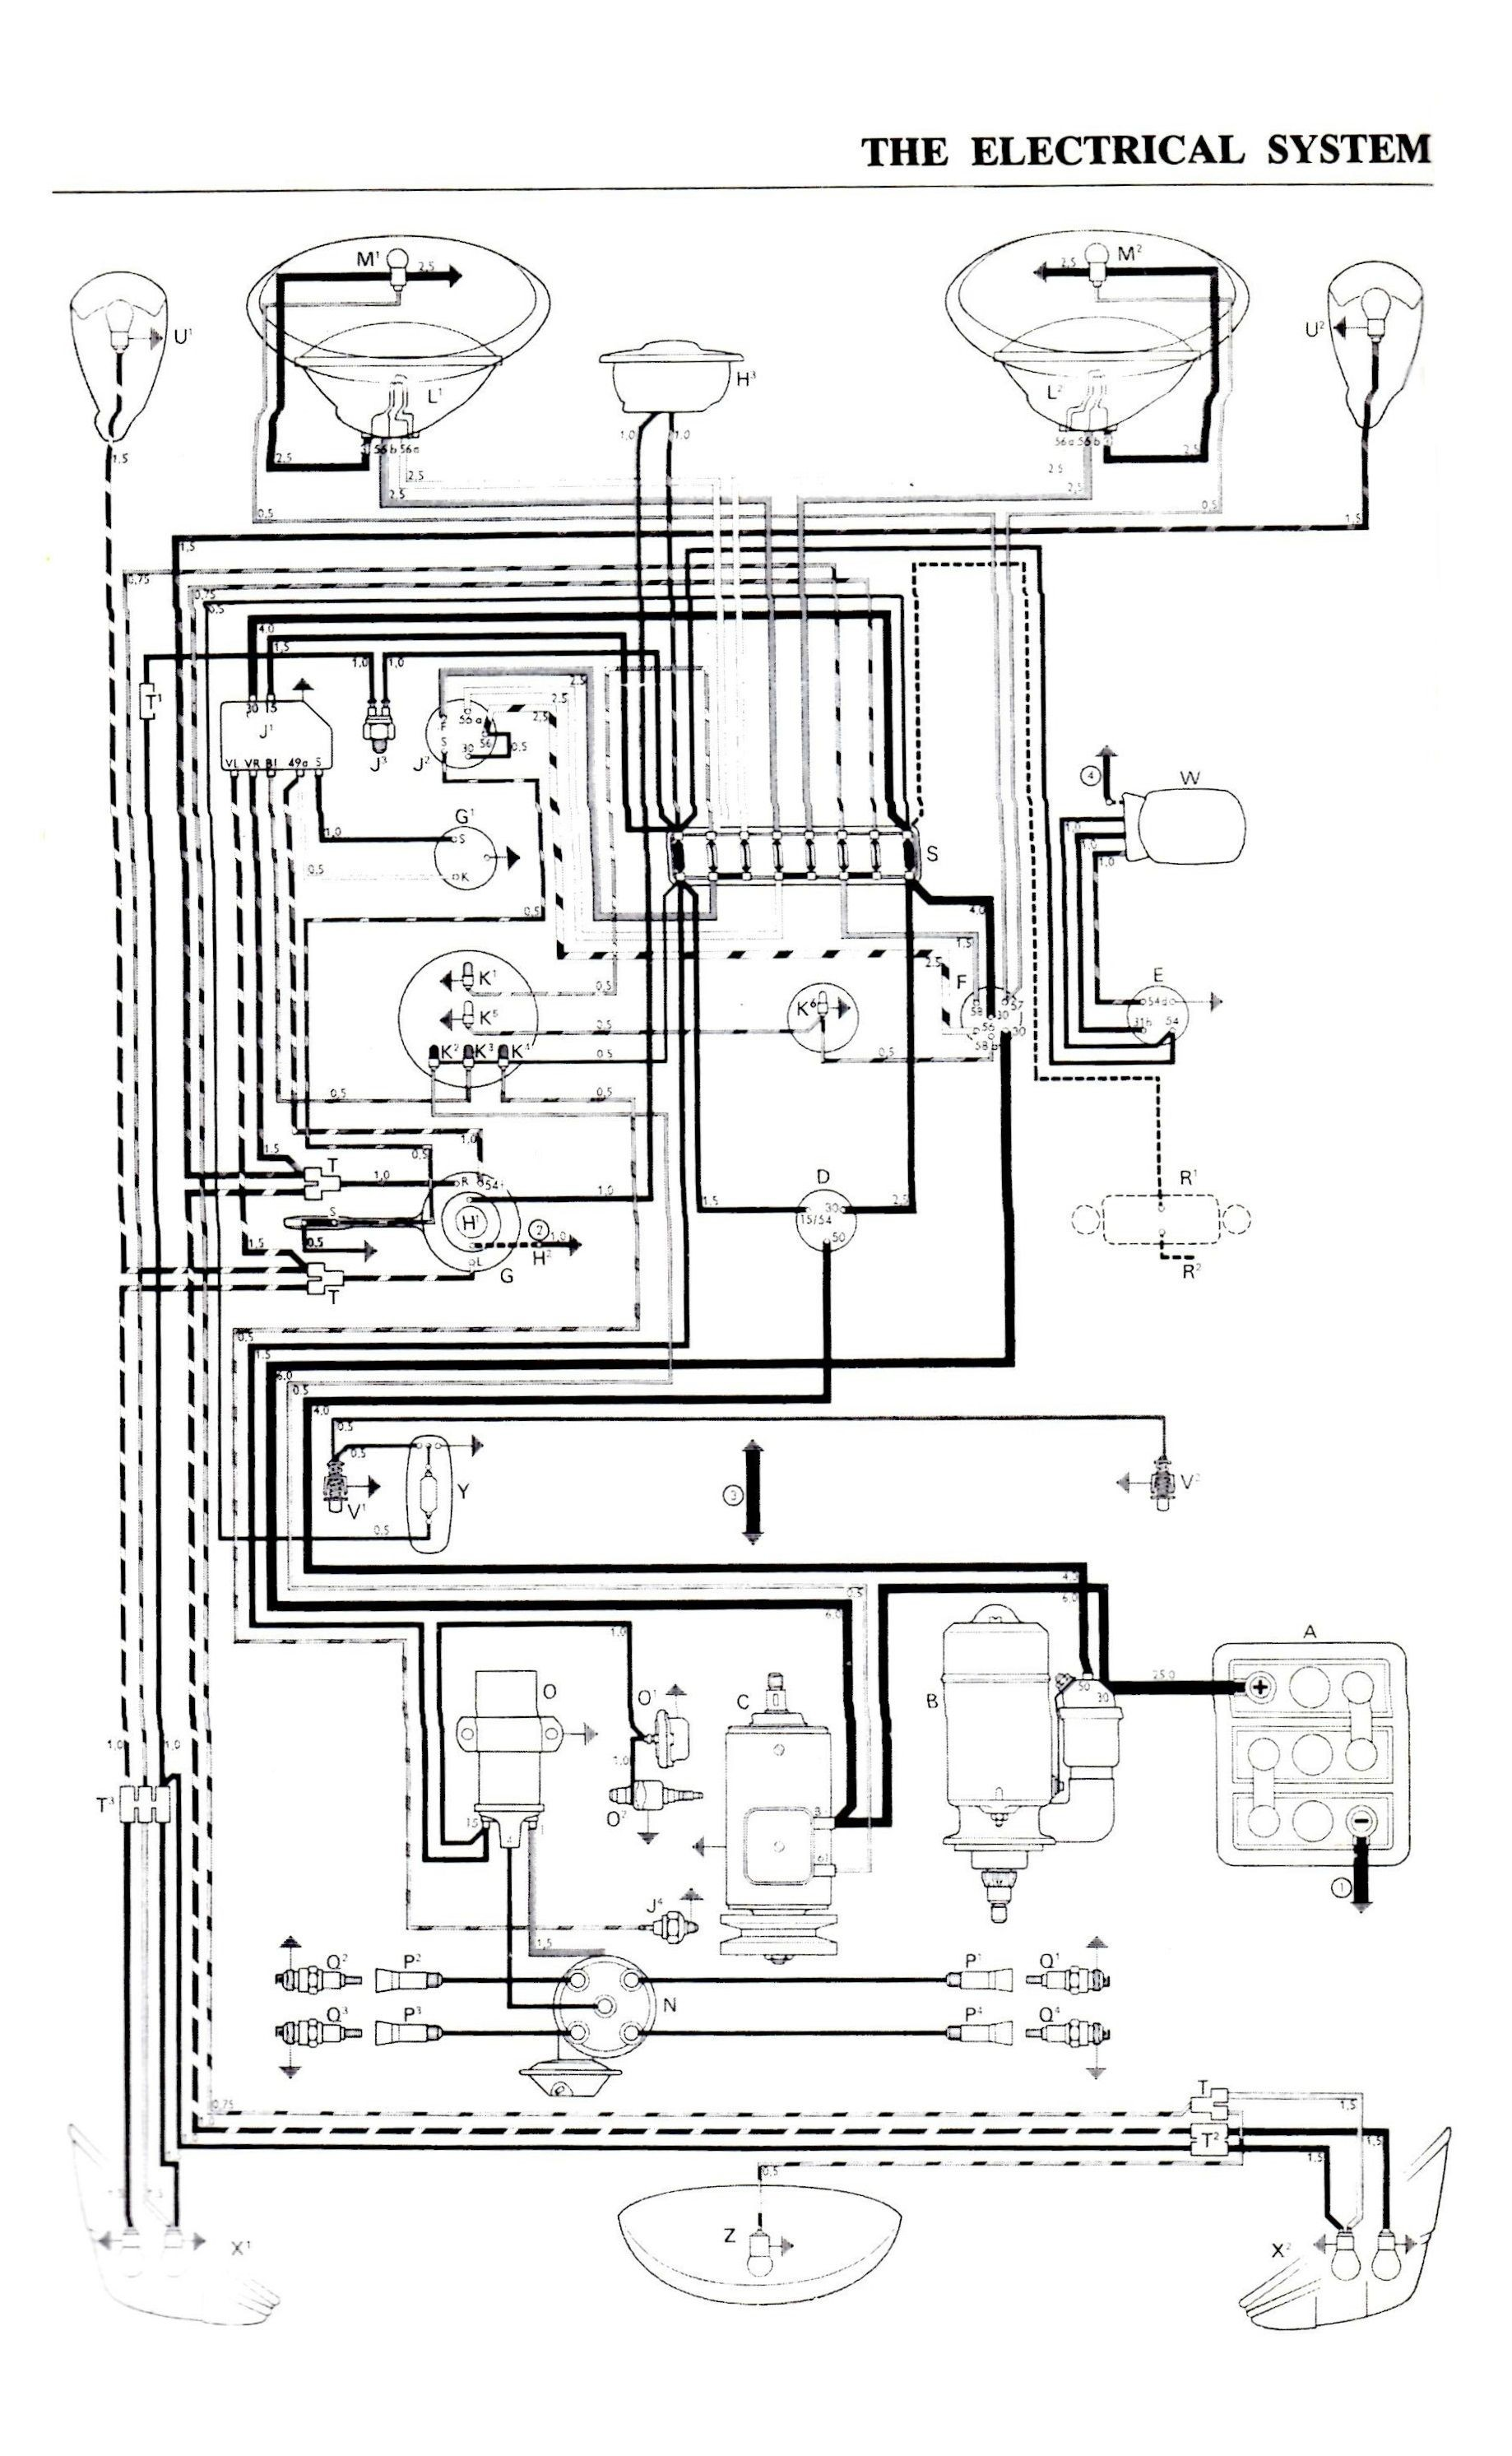 Wiring Diagram For Stinger Uv40